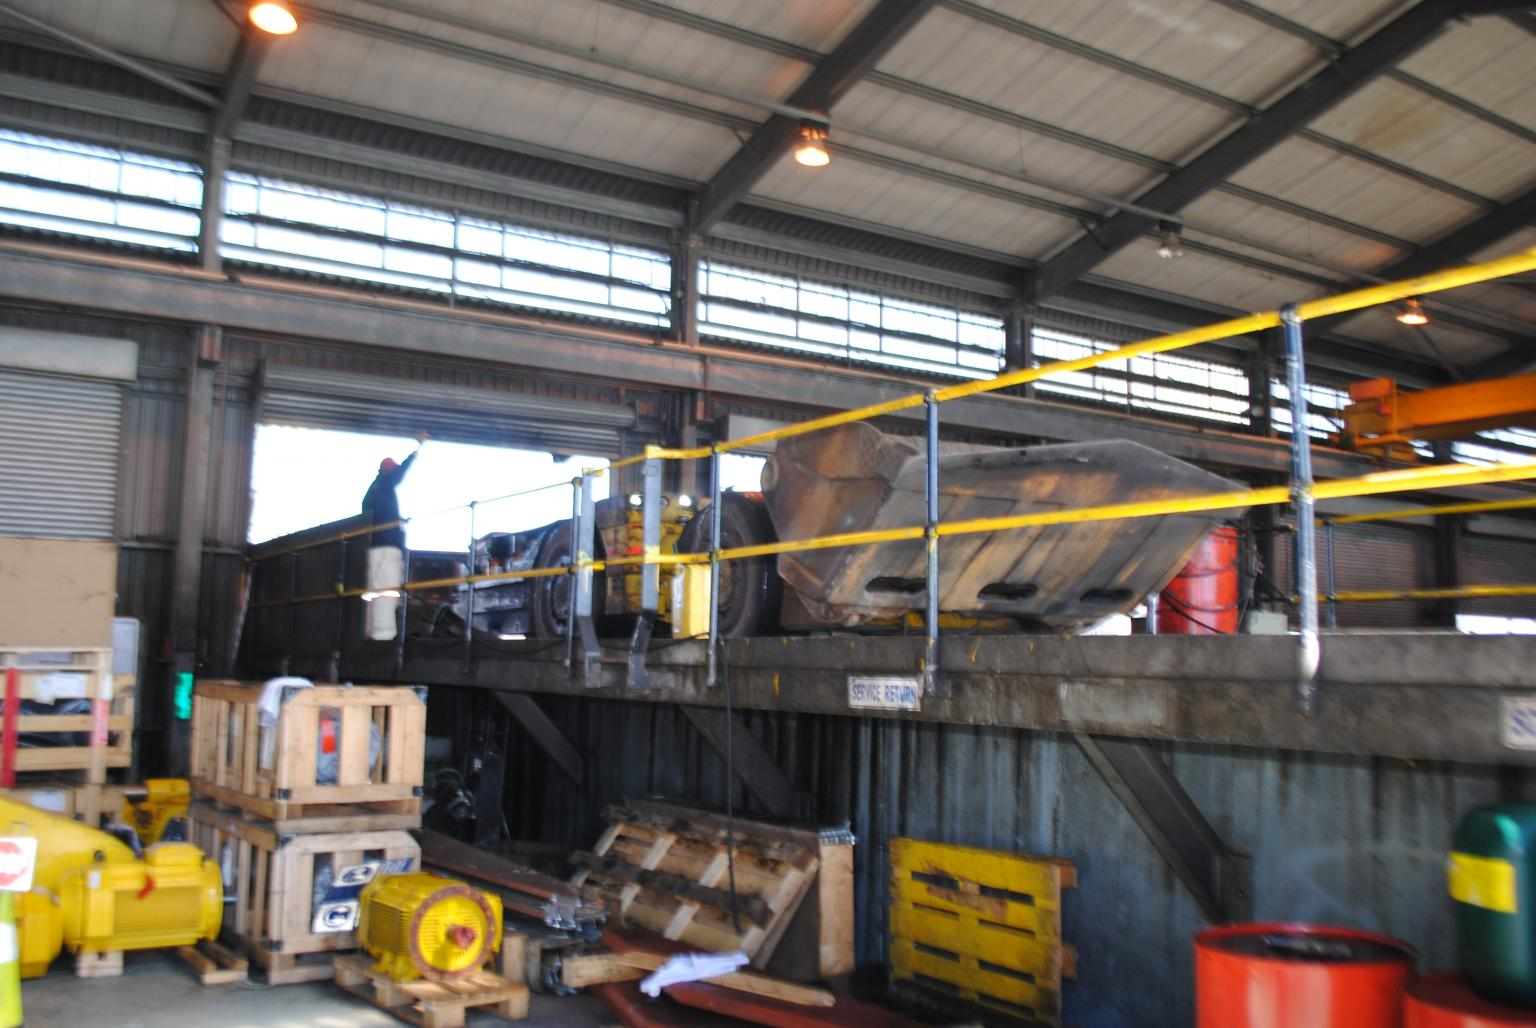 A ramp in Atlas Copco's surface workshop for Anglo American Platinum's Bathopele mine allows safe and easy access beneath Scooptrams to service components Photo: Author – M B Jones